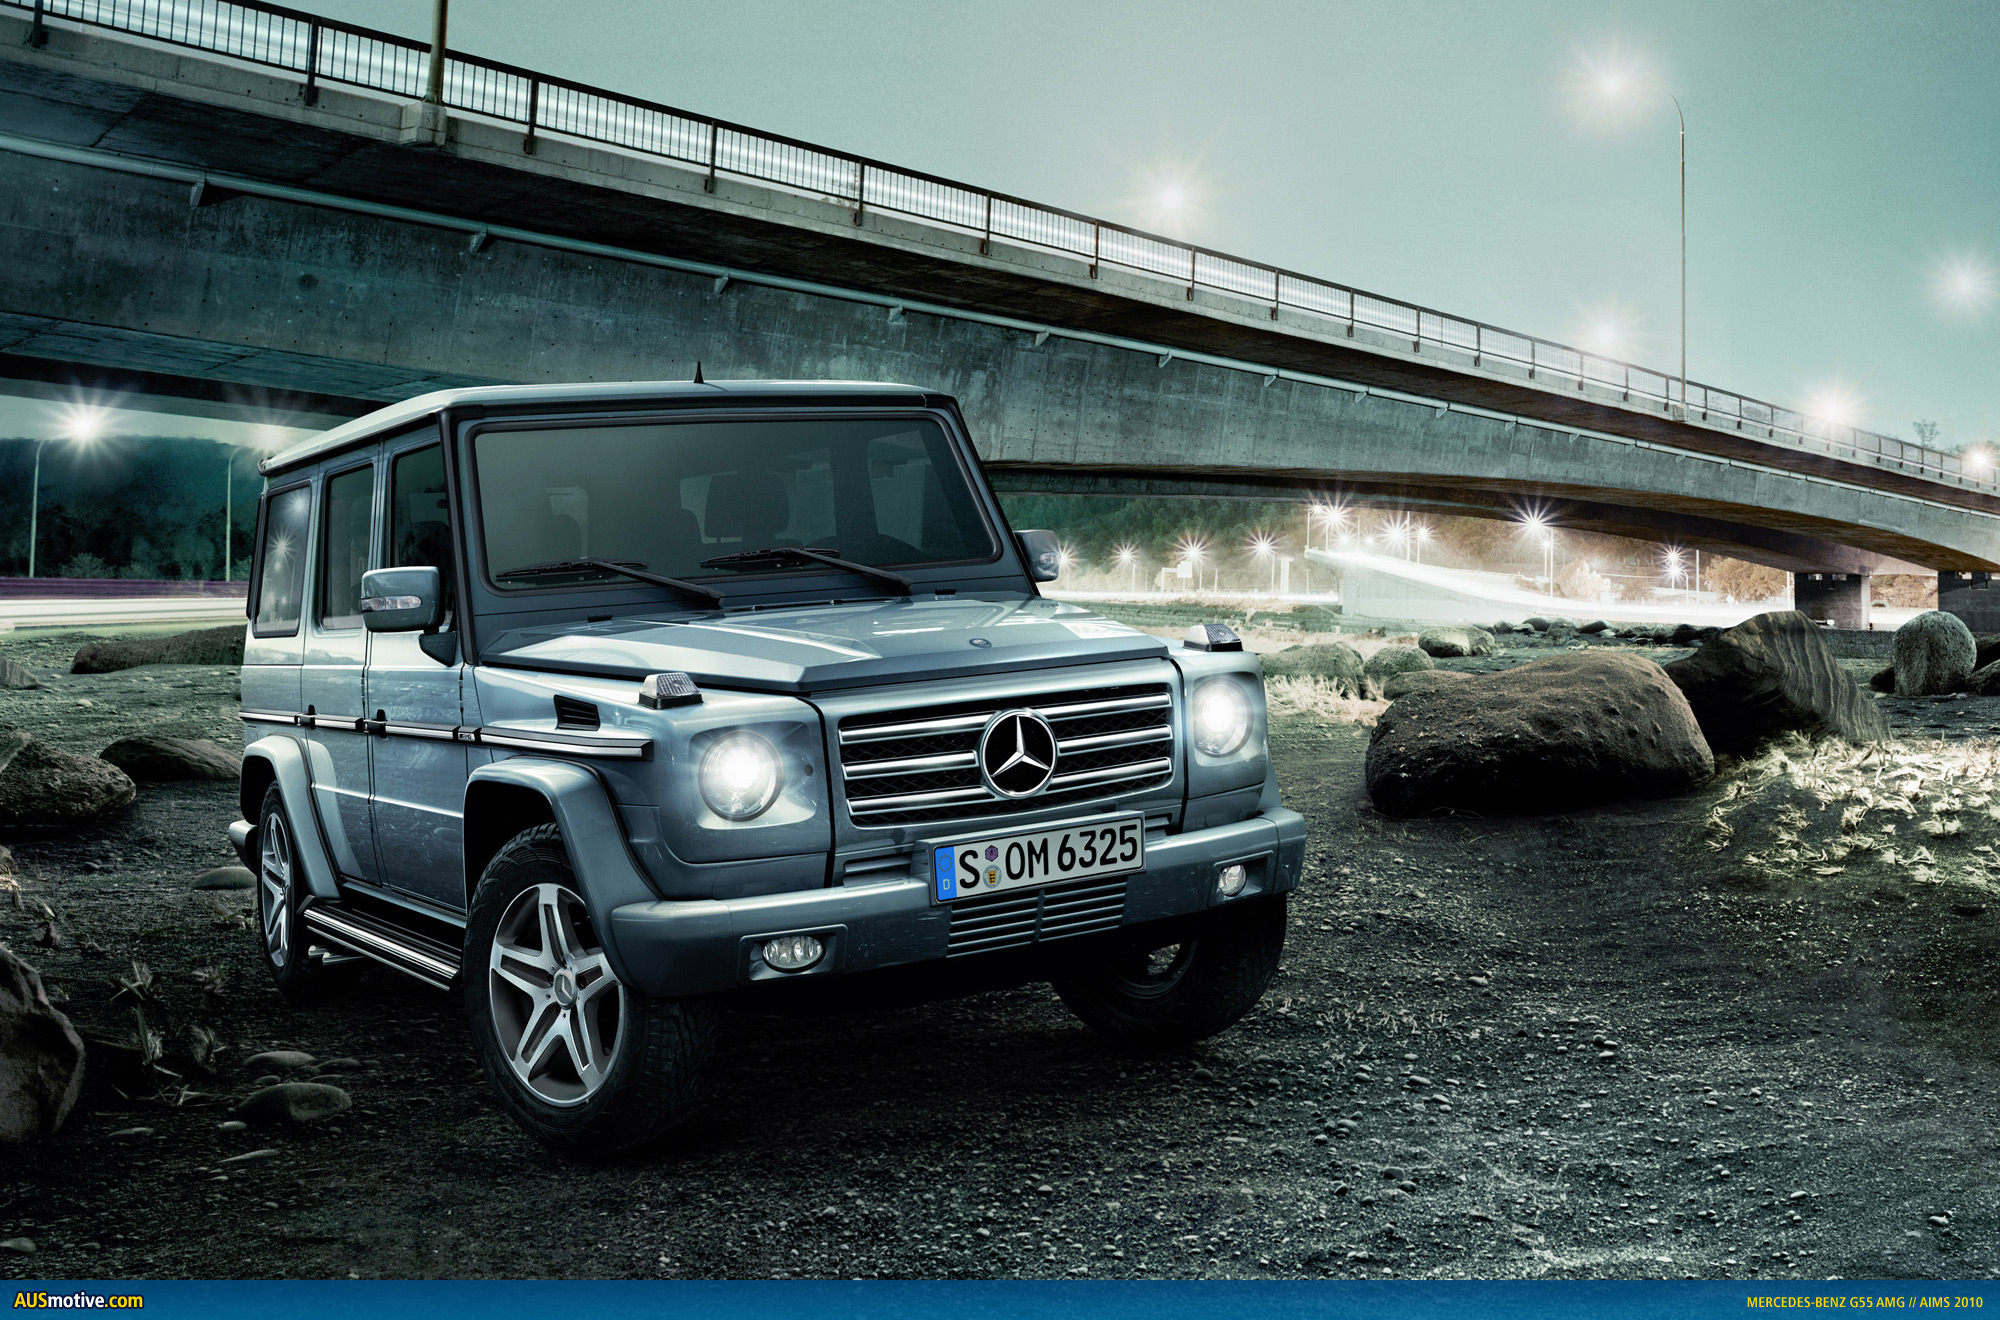 Aims 2010 mercedes benz g class for Mercedes benz g class pictures